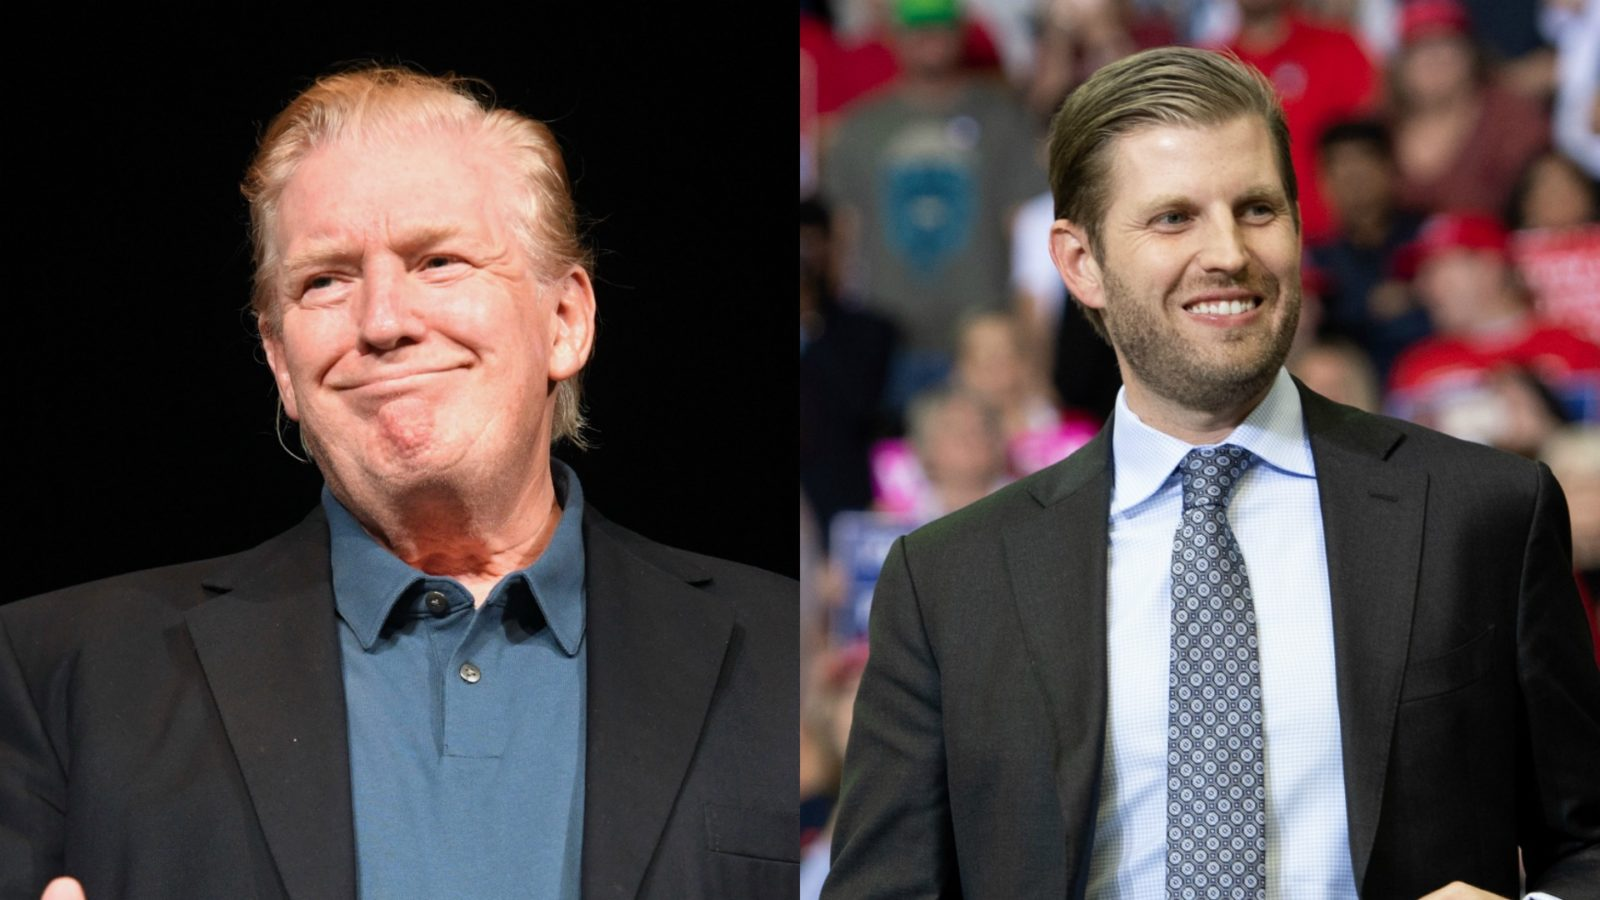 Donald Trump stepped out with a new hairstyle on Sunday with many claiming it is quite similar to his son Eric's regular hair-do.